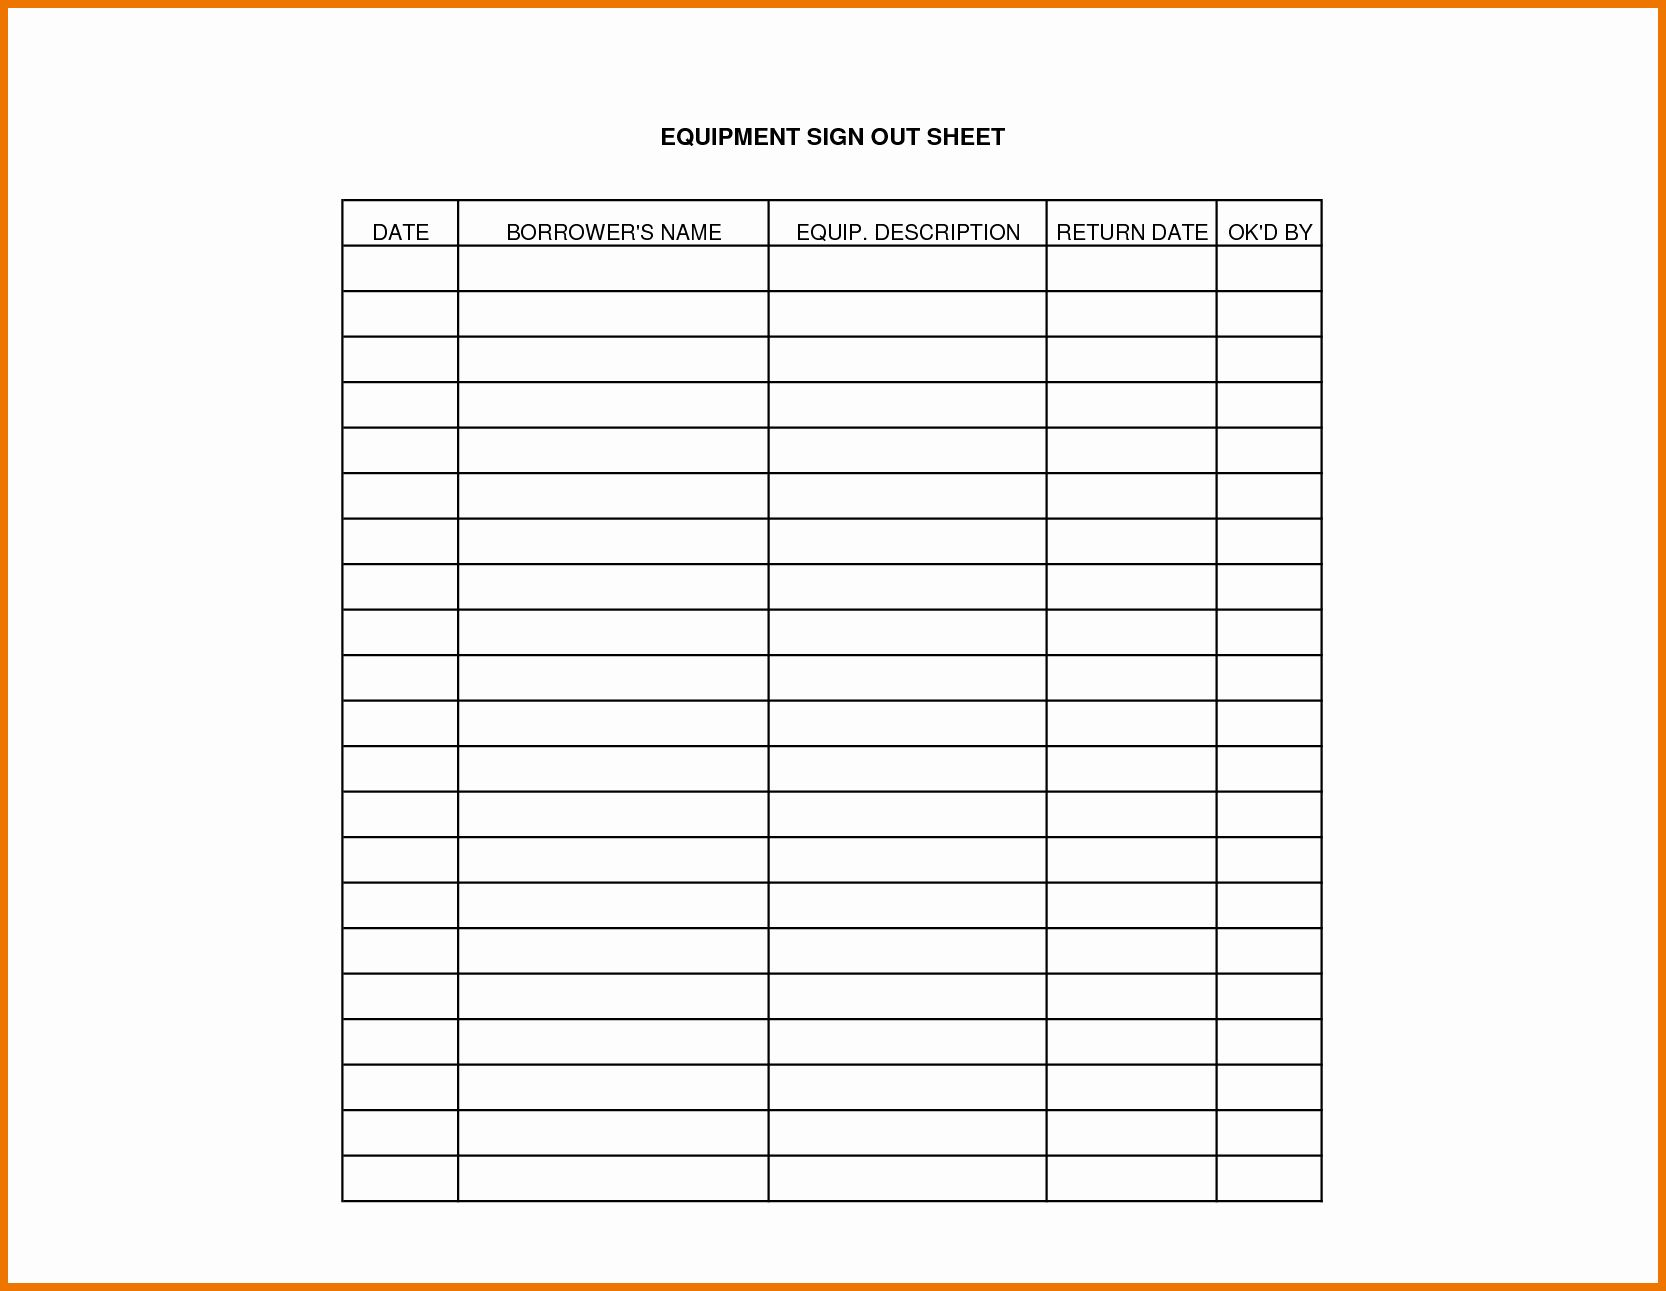 Equipment Sign Out Sheet Template Inspirational Equipment Sign Out Sheet Template Sign Out Sheet Templates Make Business Cards